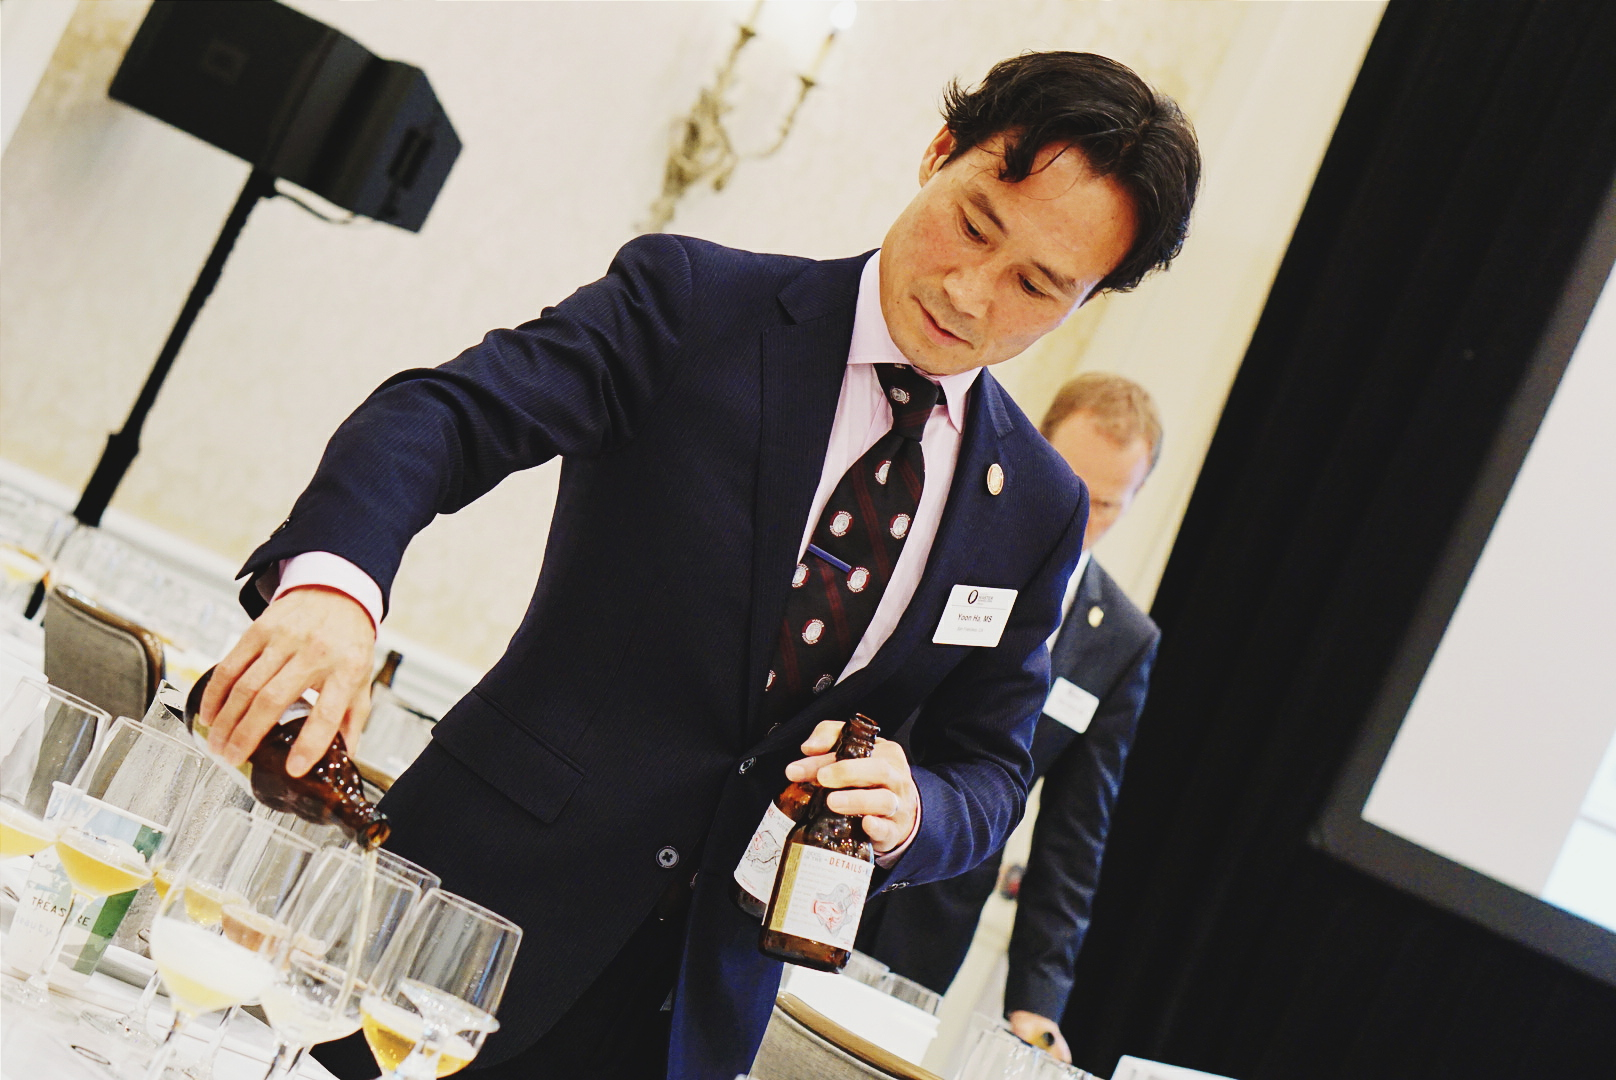 The Court of Master Sommeliers